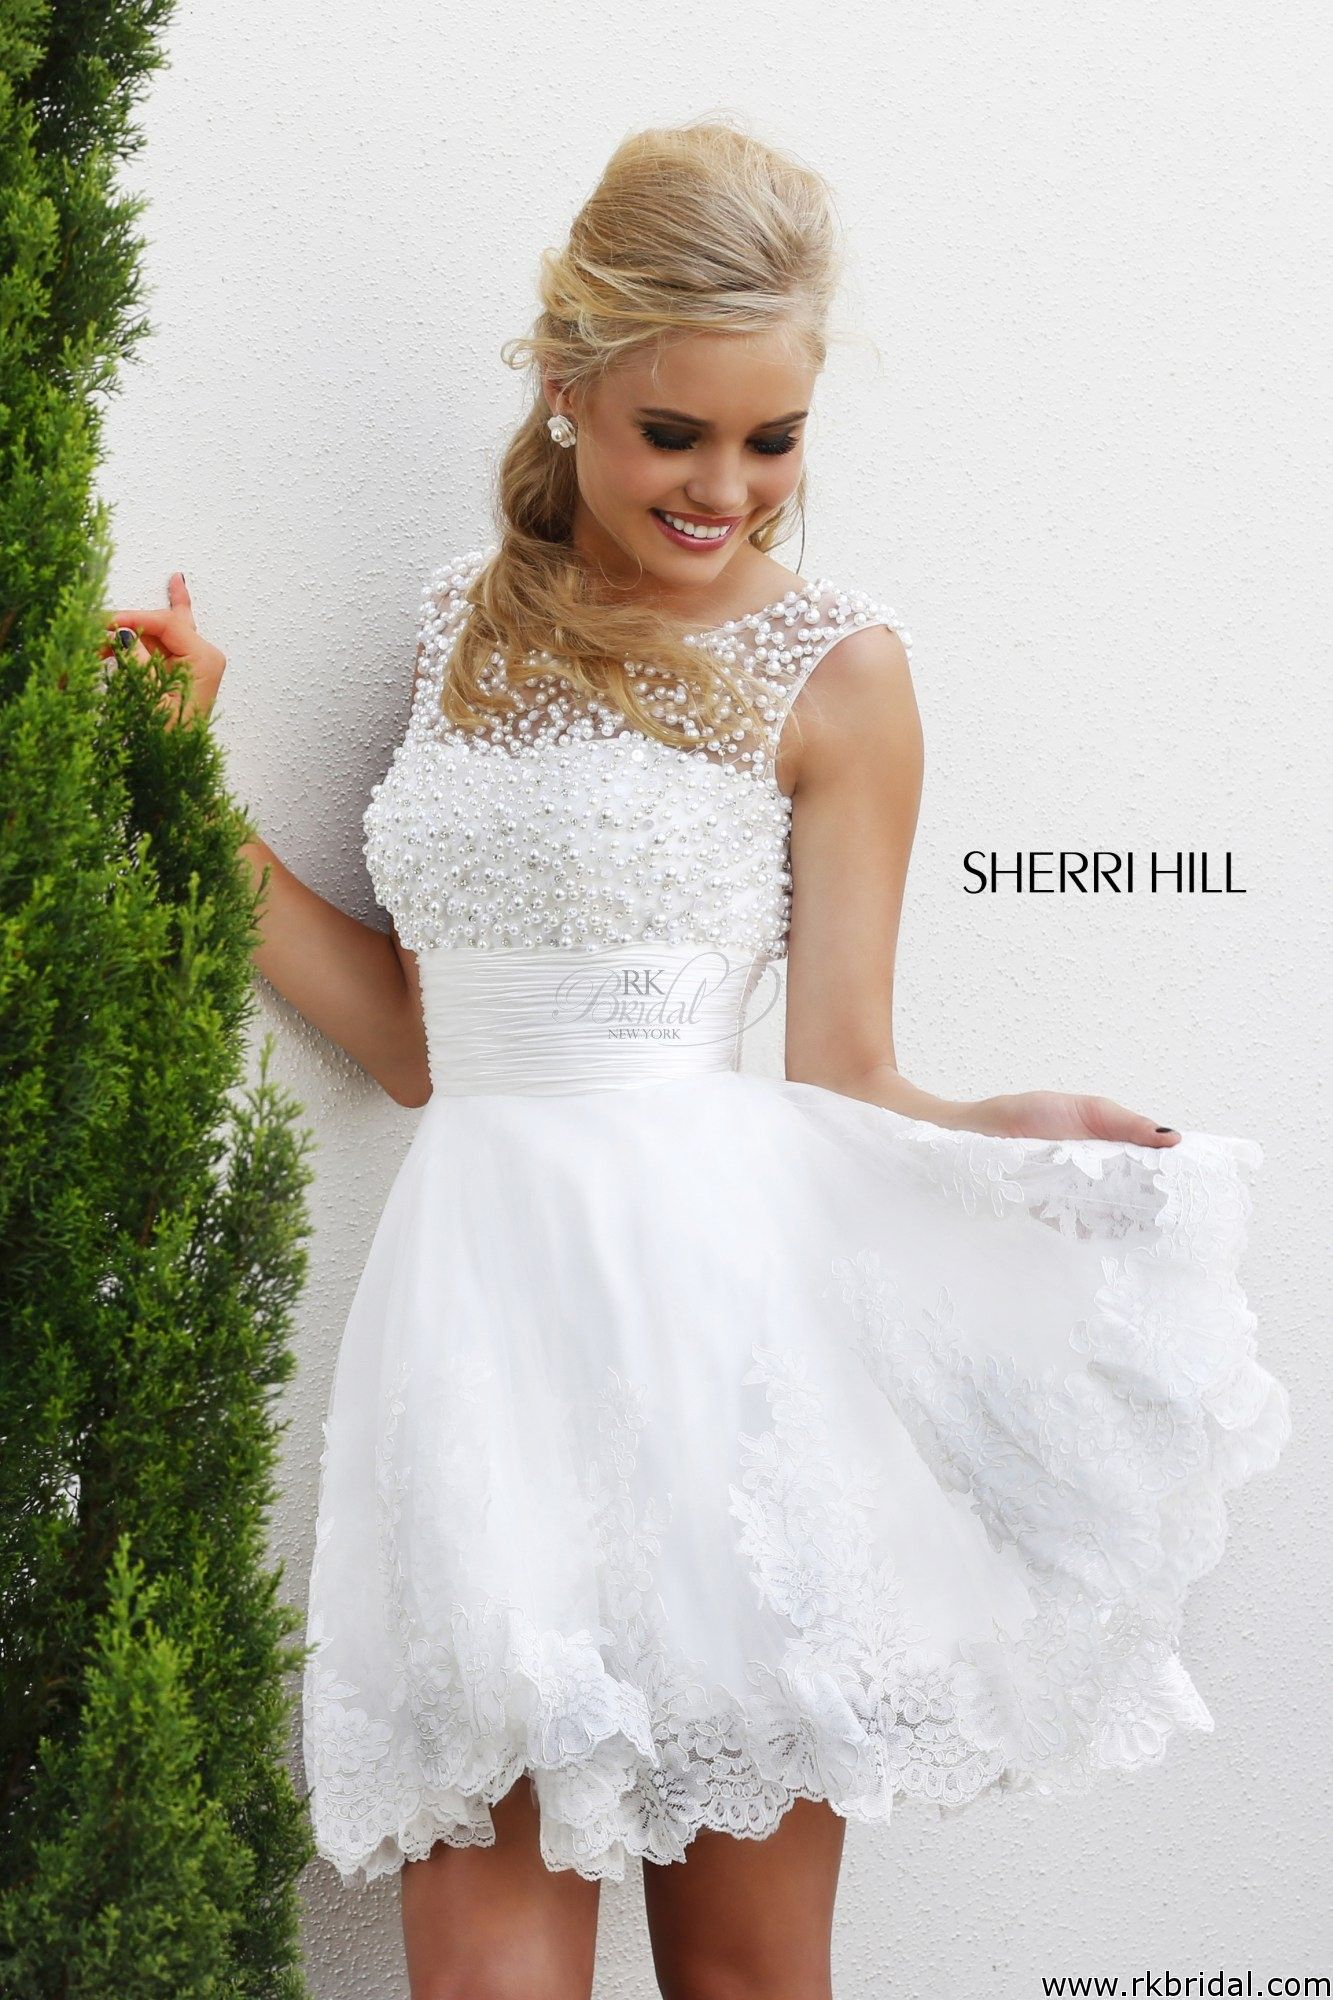 Sherri Hill Collection Spring 2014 - Style 4302 Short white lace/beading